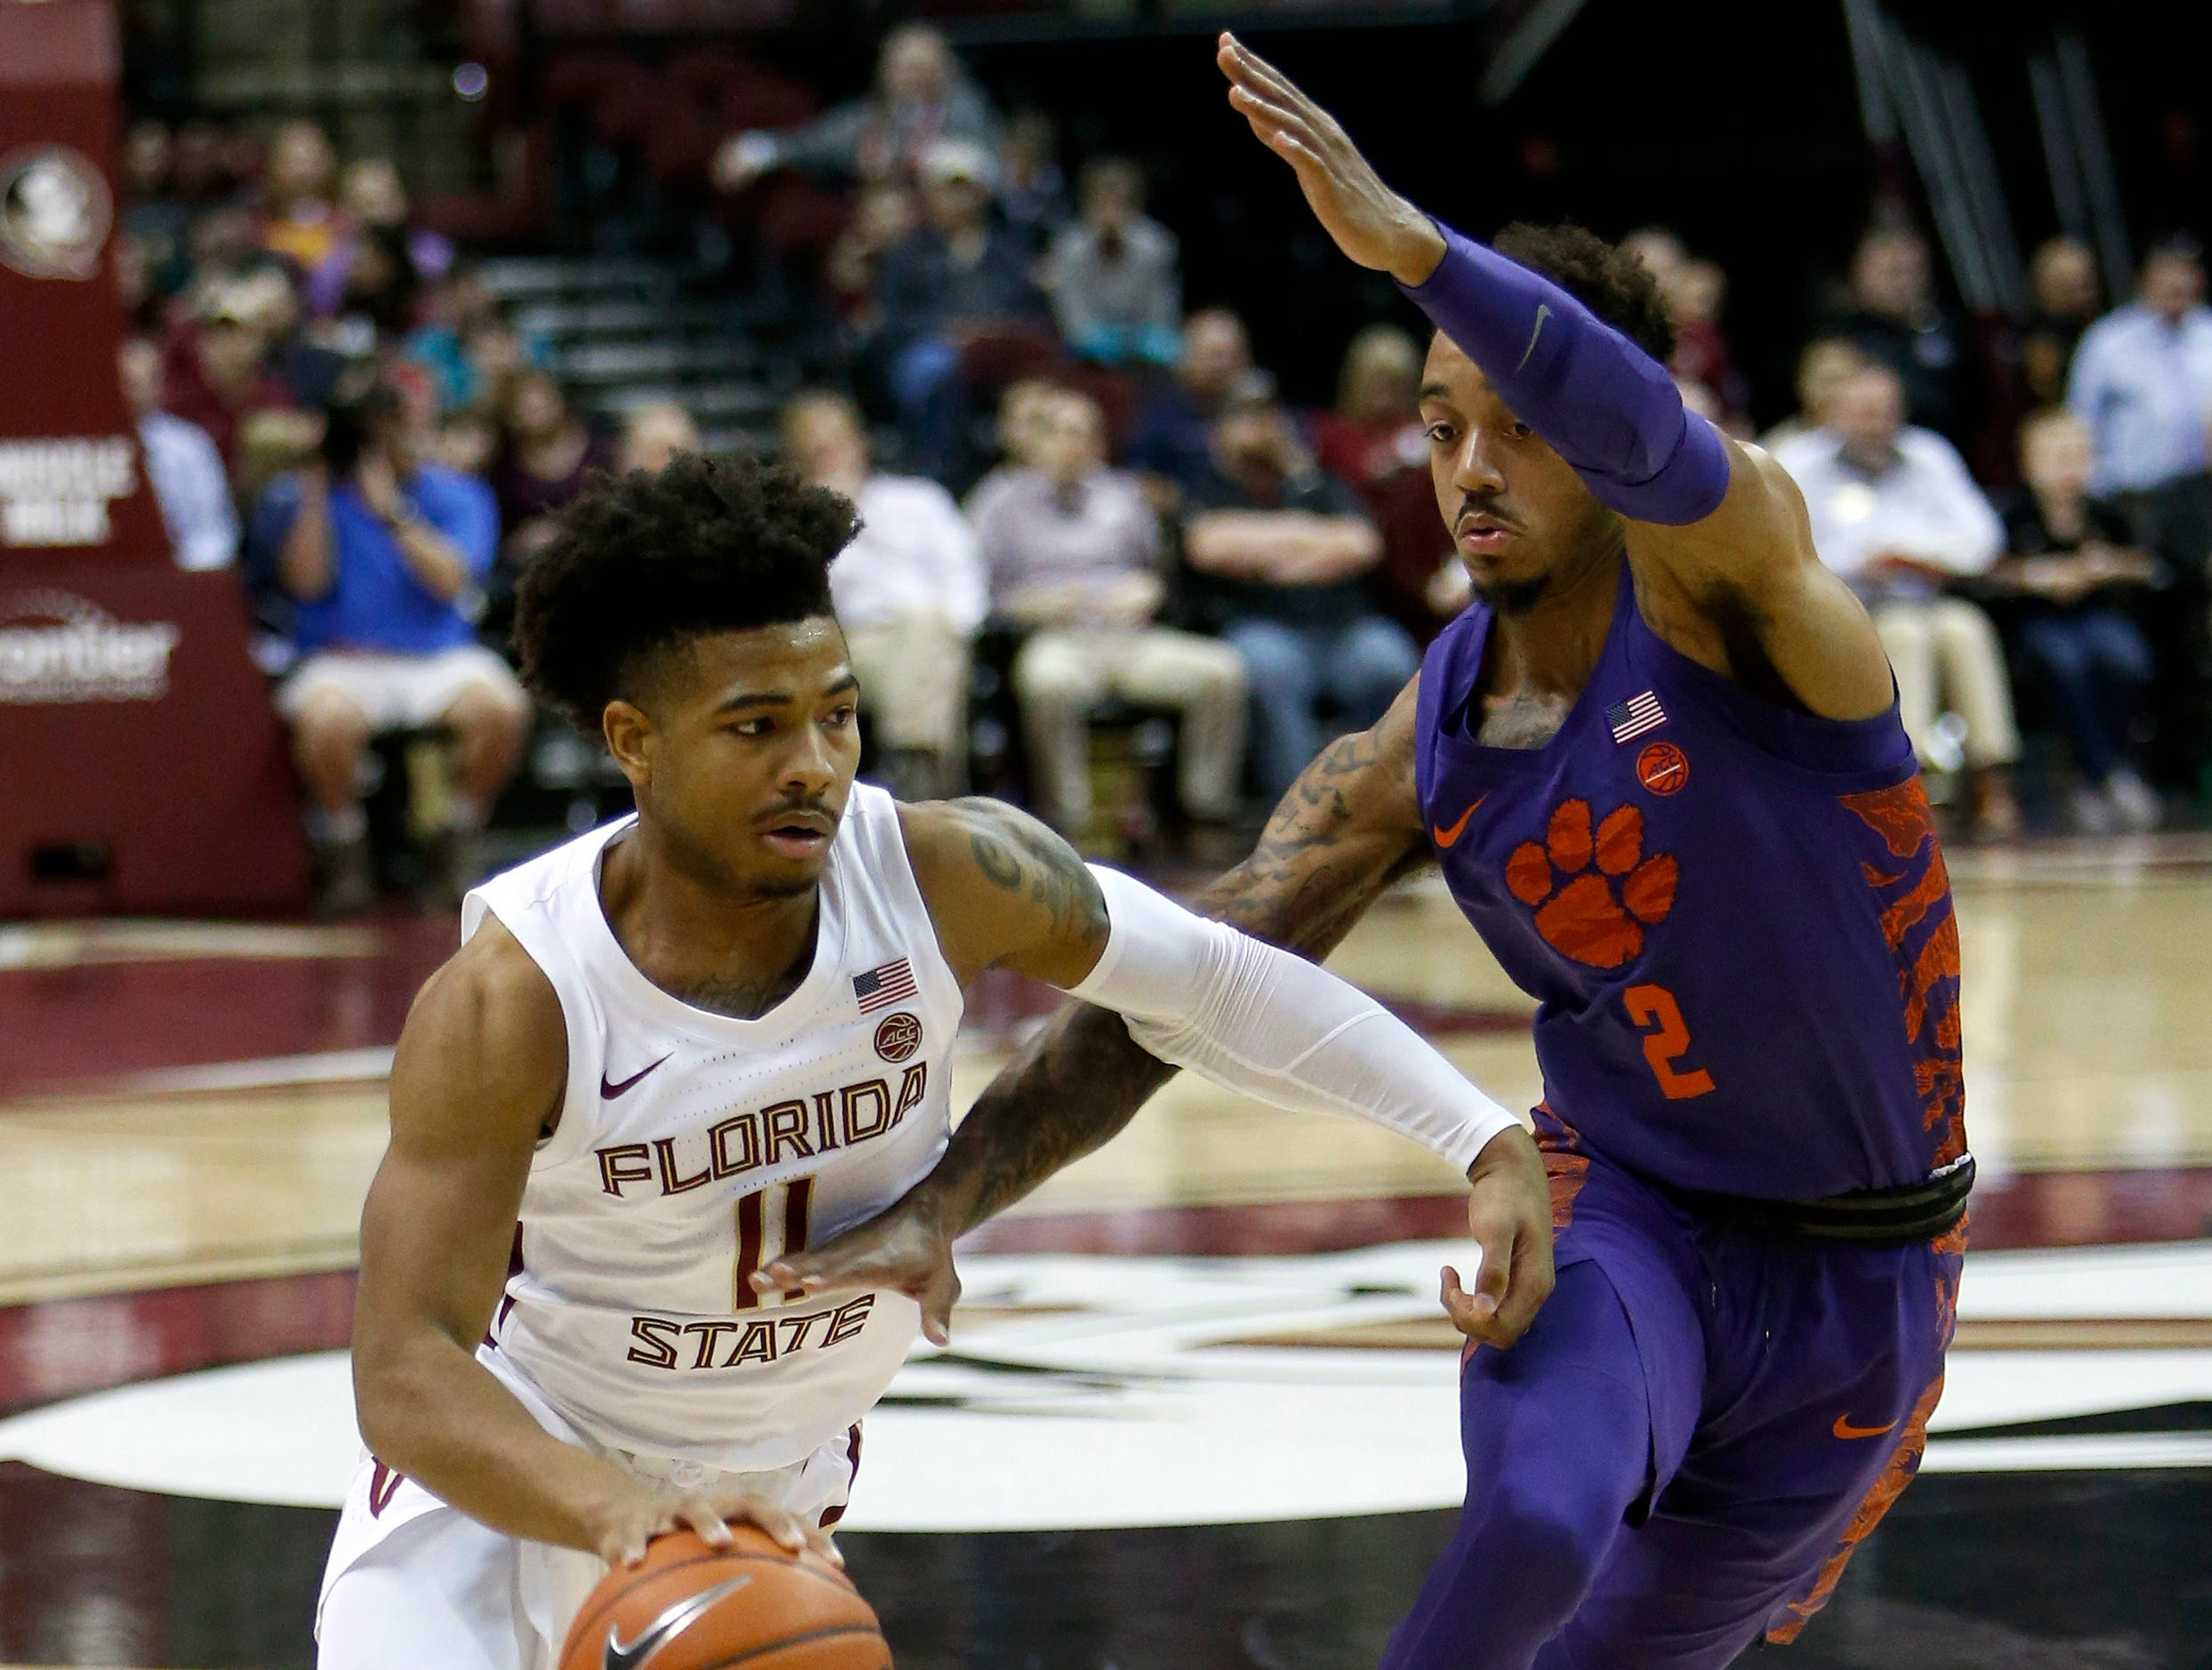 Jan 22, 2019; Tallahassee, FL, USA; Florida State Seminoles guard David Nichols (11) drives against Clemson Tigers guard Marcquise Reed (2) during the first half at Donald L. Tucker Center. Mandatory Credit: Glenn Beil-USA TODAY Sports